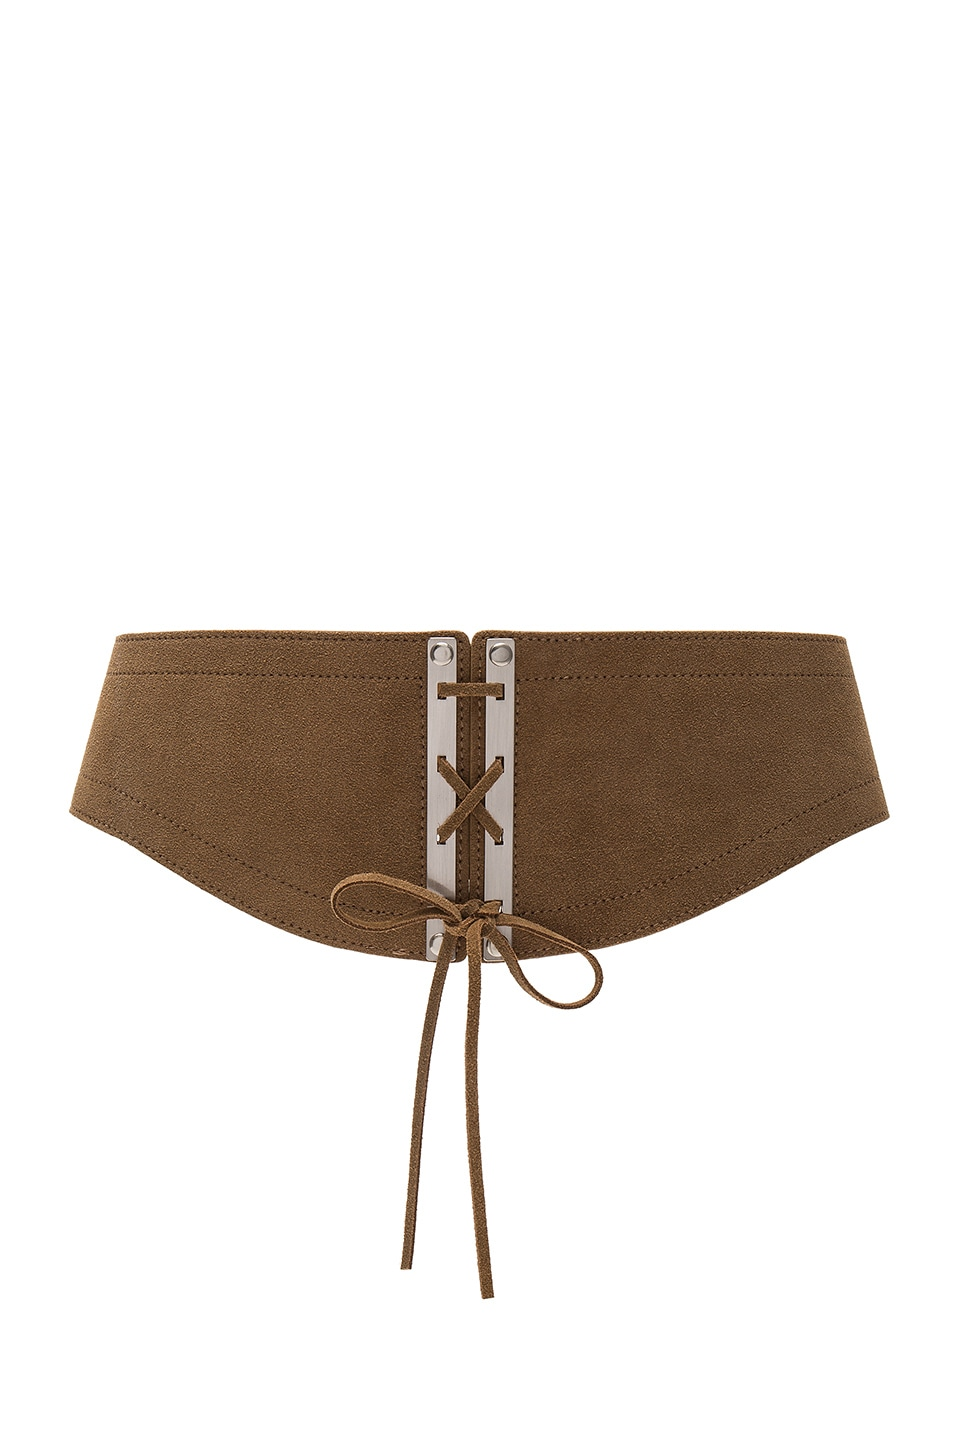 Lovestrength Roxy Waist Belt in Tan